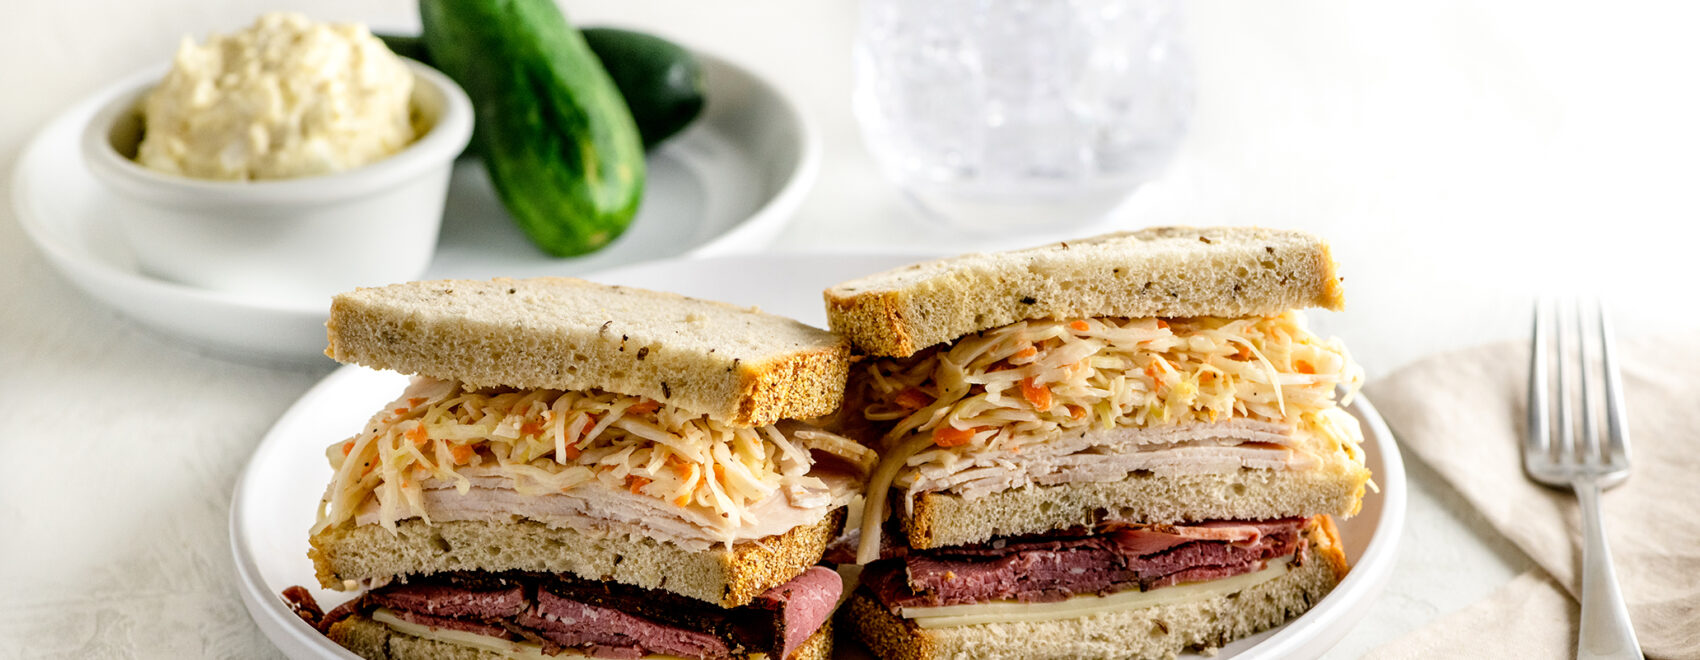 triple decker sandwich with pastrami, turkey and cole slaw between 3 slices of rye bread on a white plate. Pickles and potato salad on the side.